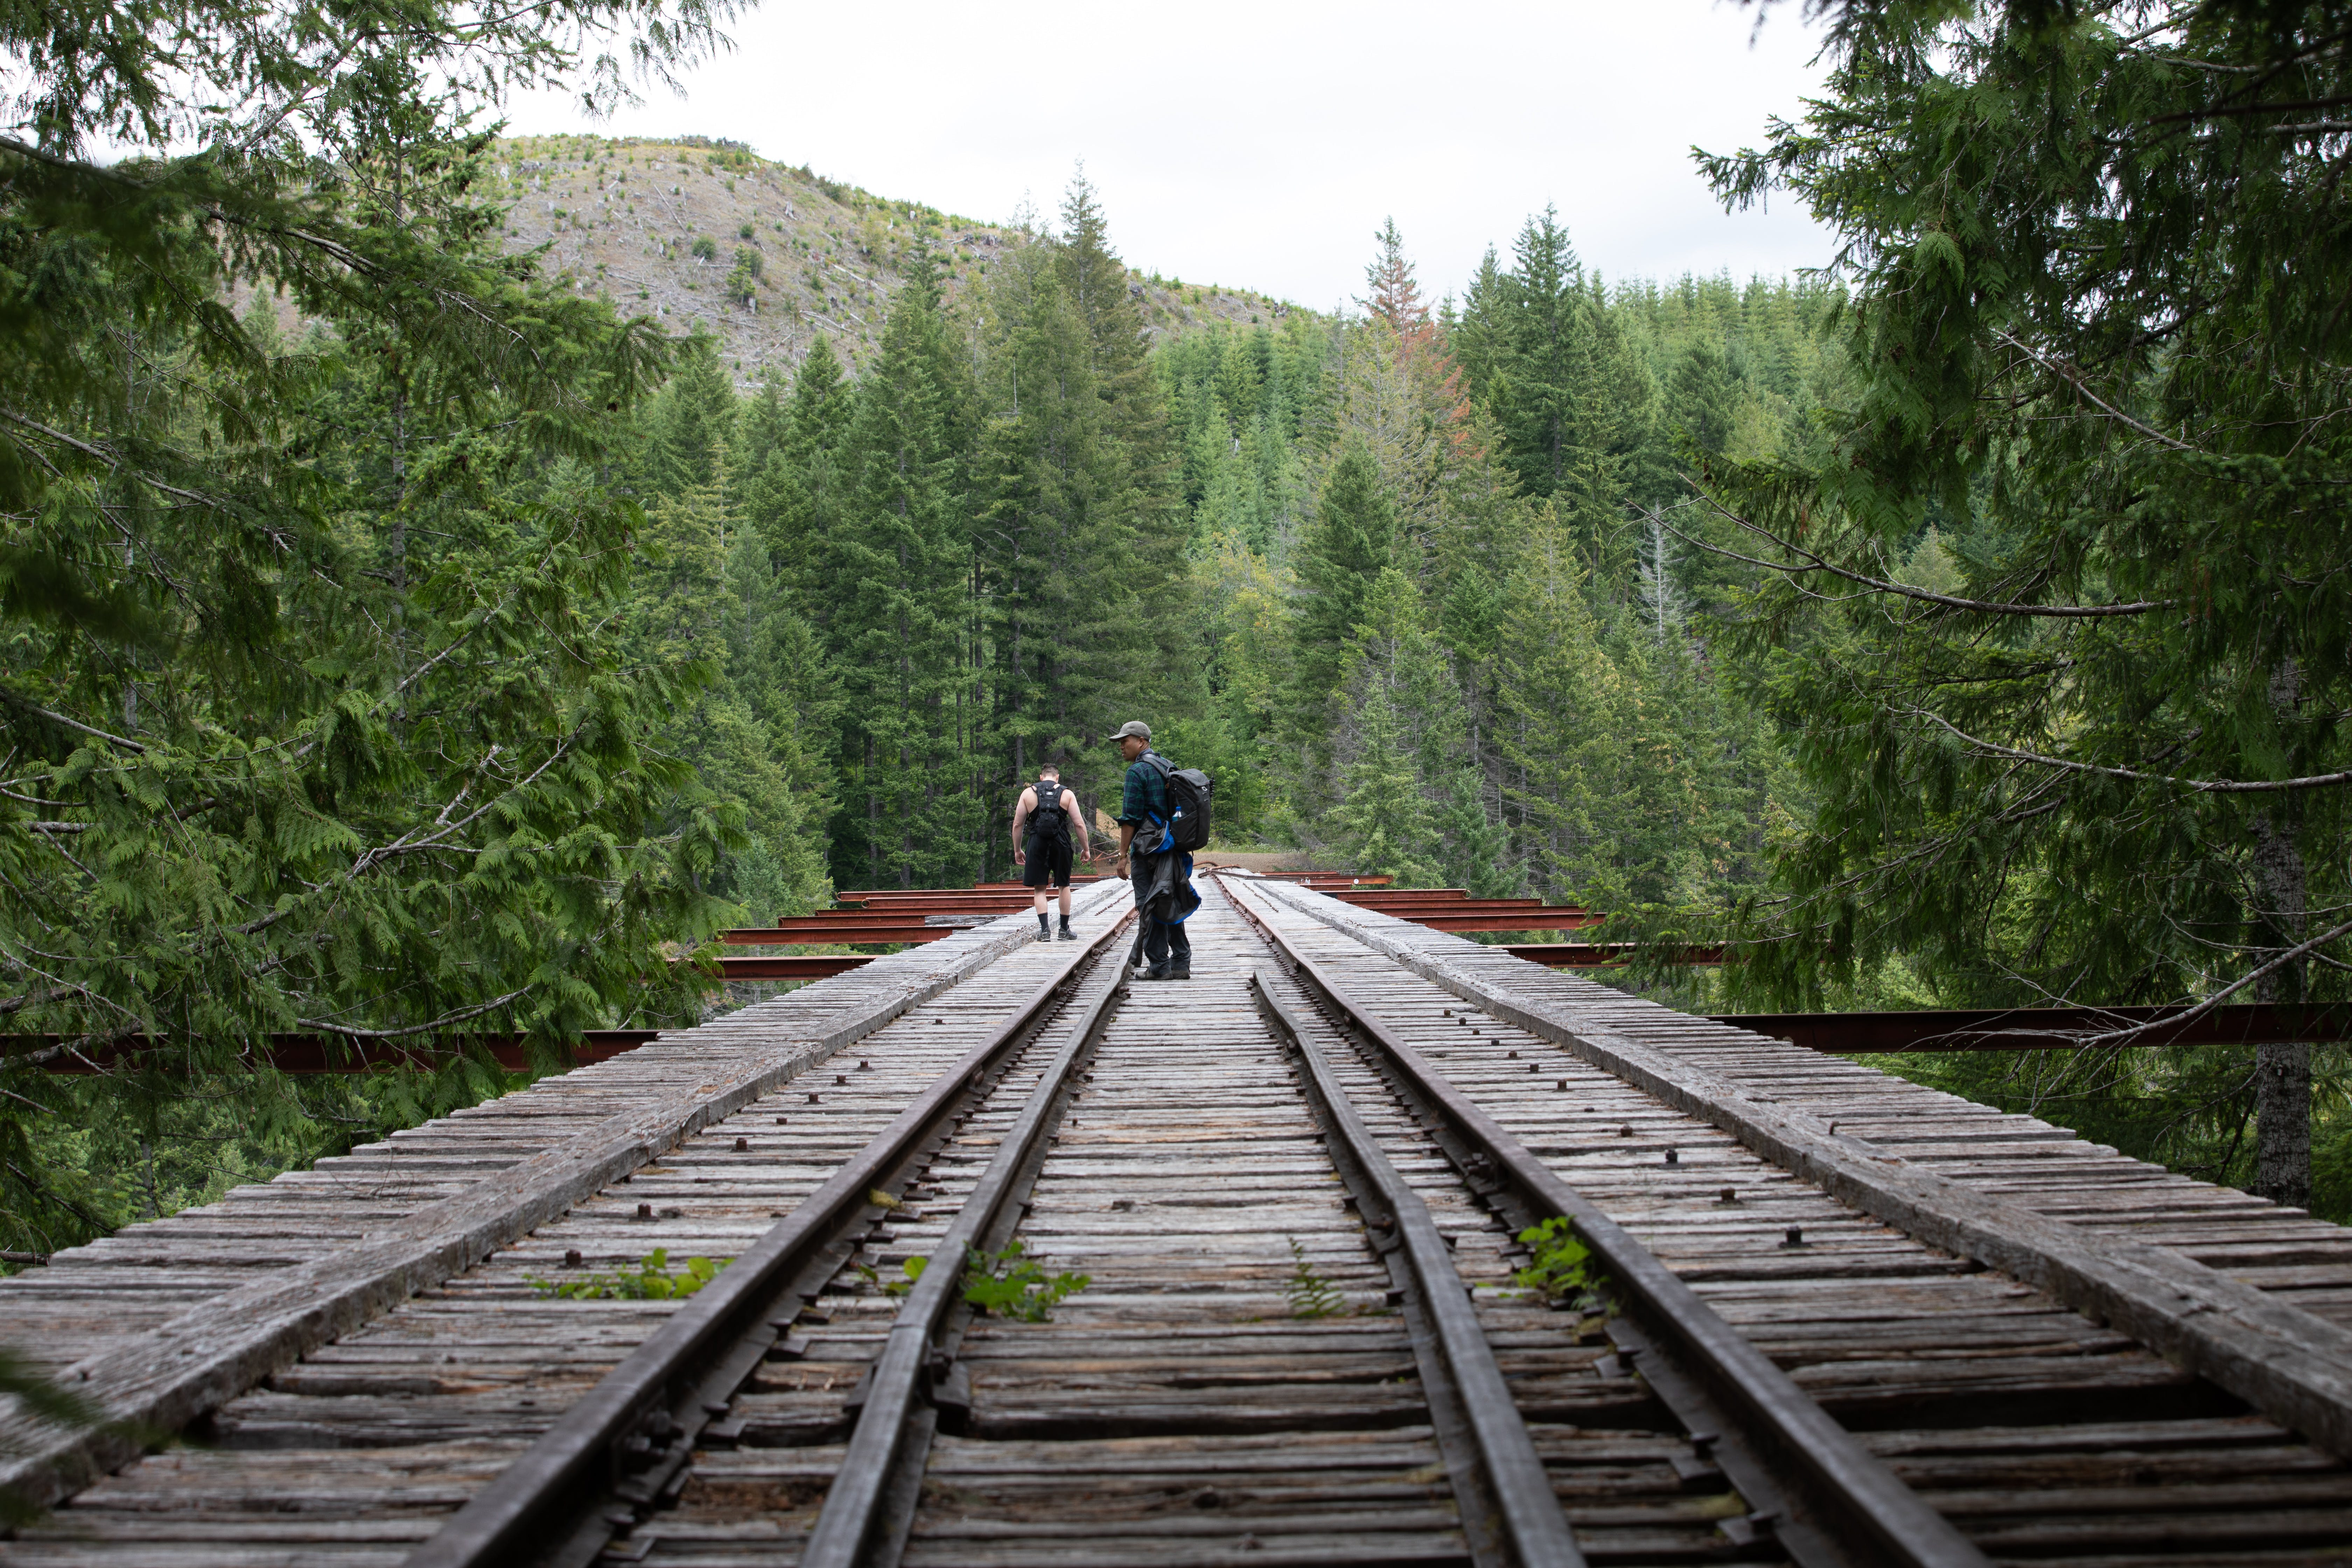 Two Hikers at the Railroad